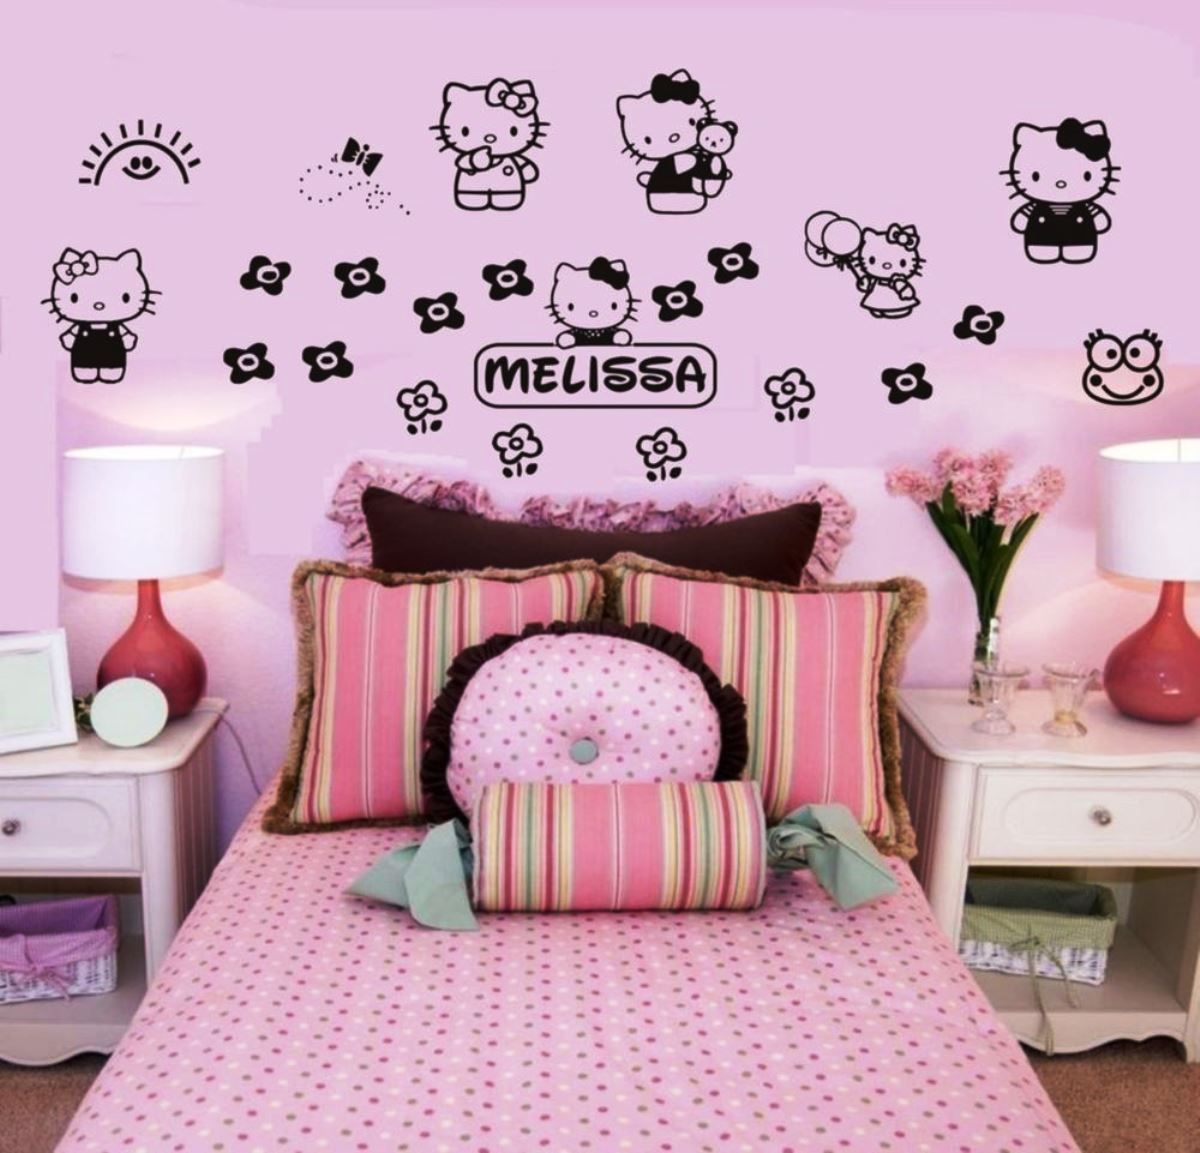 Superior Hello Kitty Room Design Ideas Part - 13: Sweet Pink White Bedroom Furniture On Laminate Floor Paired With Black Hello  Kitty Wall Decal Design